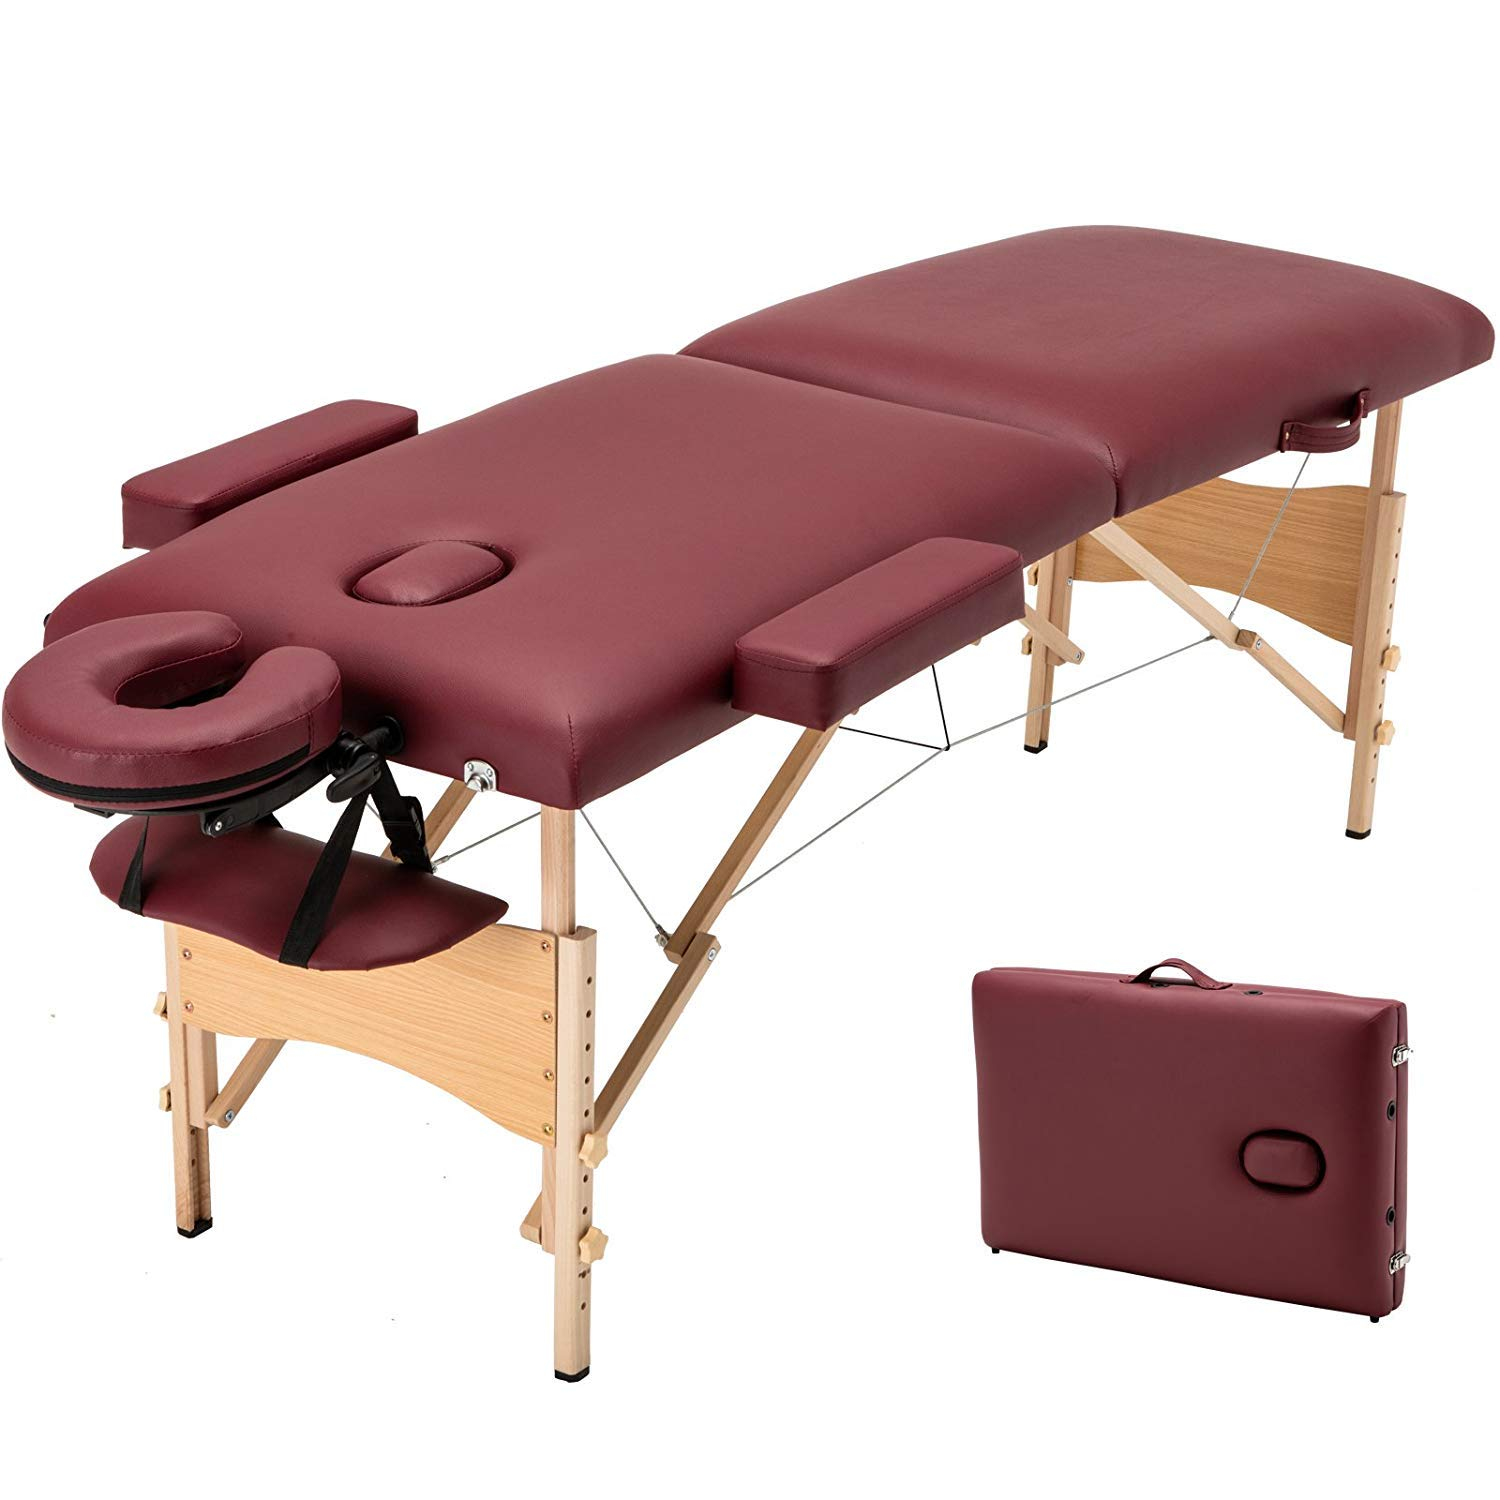 Aglaia Folding Massage Table 84'' Professional Massage Bed With Carrying Bag 2 Fold,Bronze